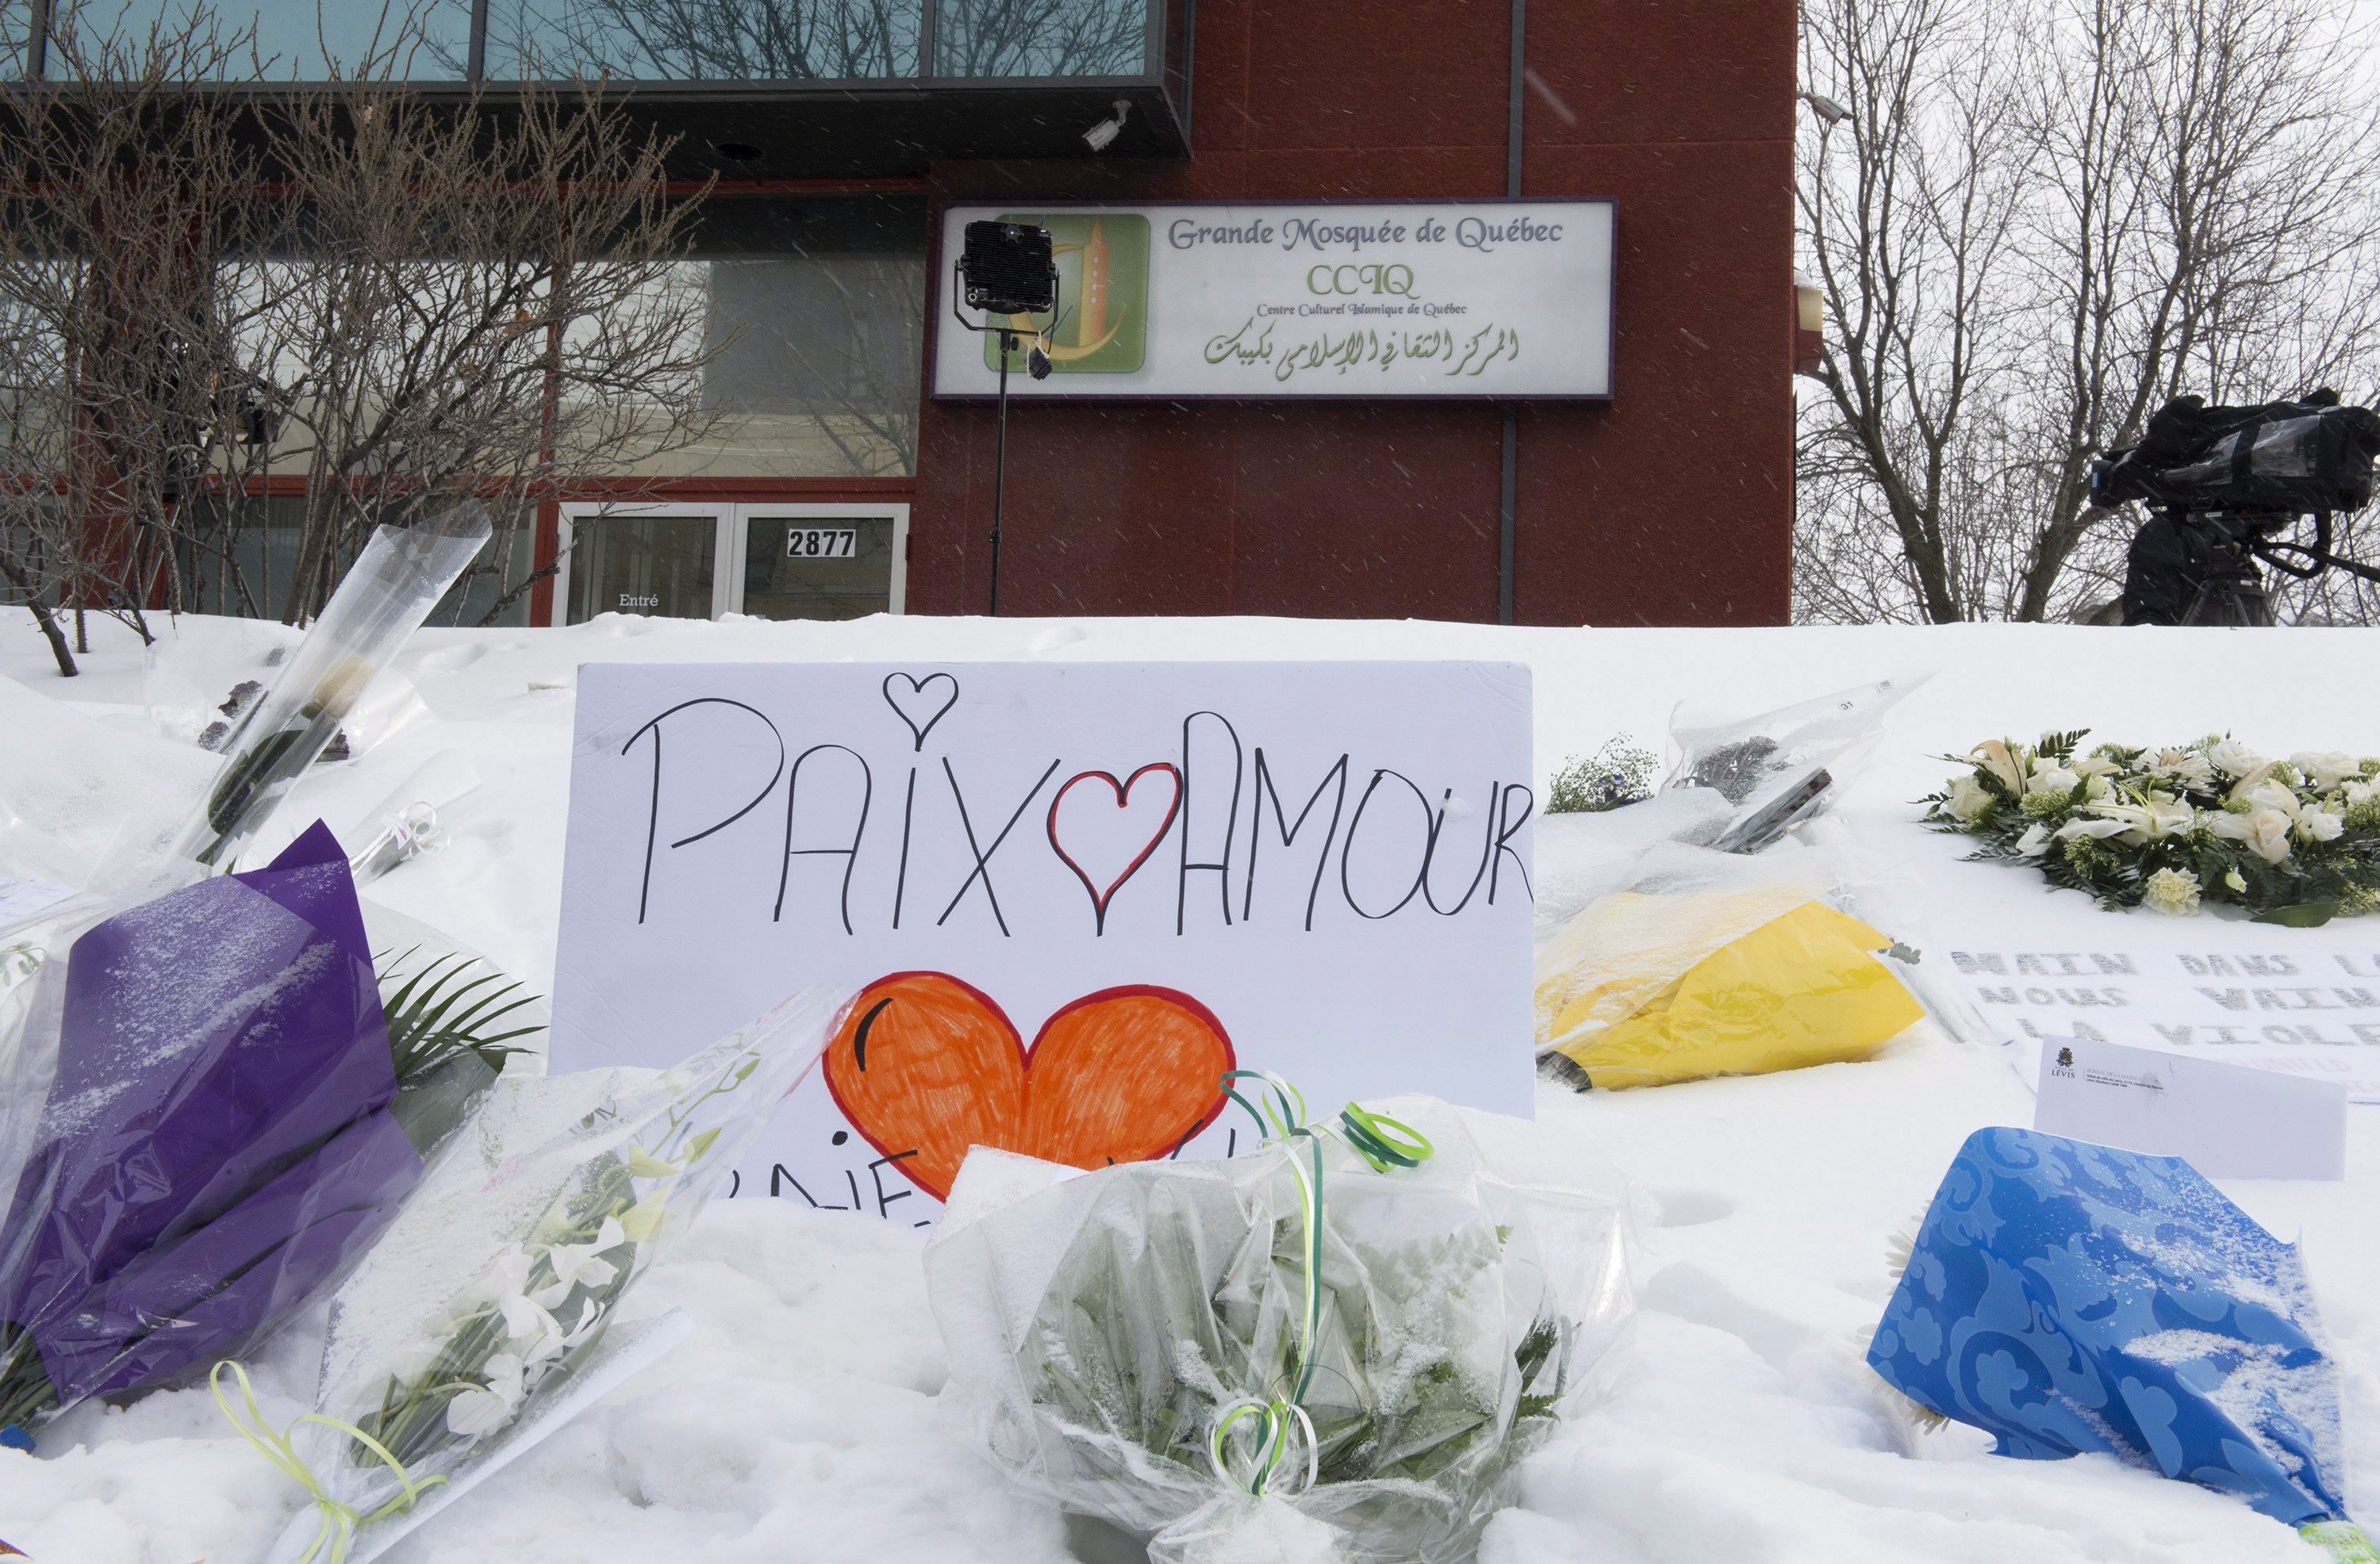 Signs sit outside the Grande mosquee de Quebec, Wednesday, February 1, 2017 in Quebec City. The mosque was the site of a deadly shooting which left six worshippers dead on Sunday, Jan. 29. THE CANADIAN PRESS/Jacques Boissinot